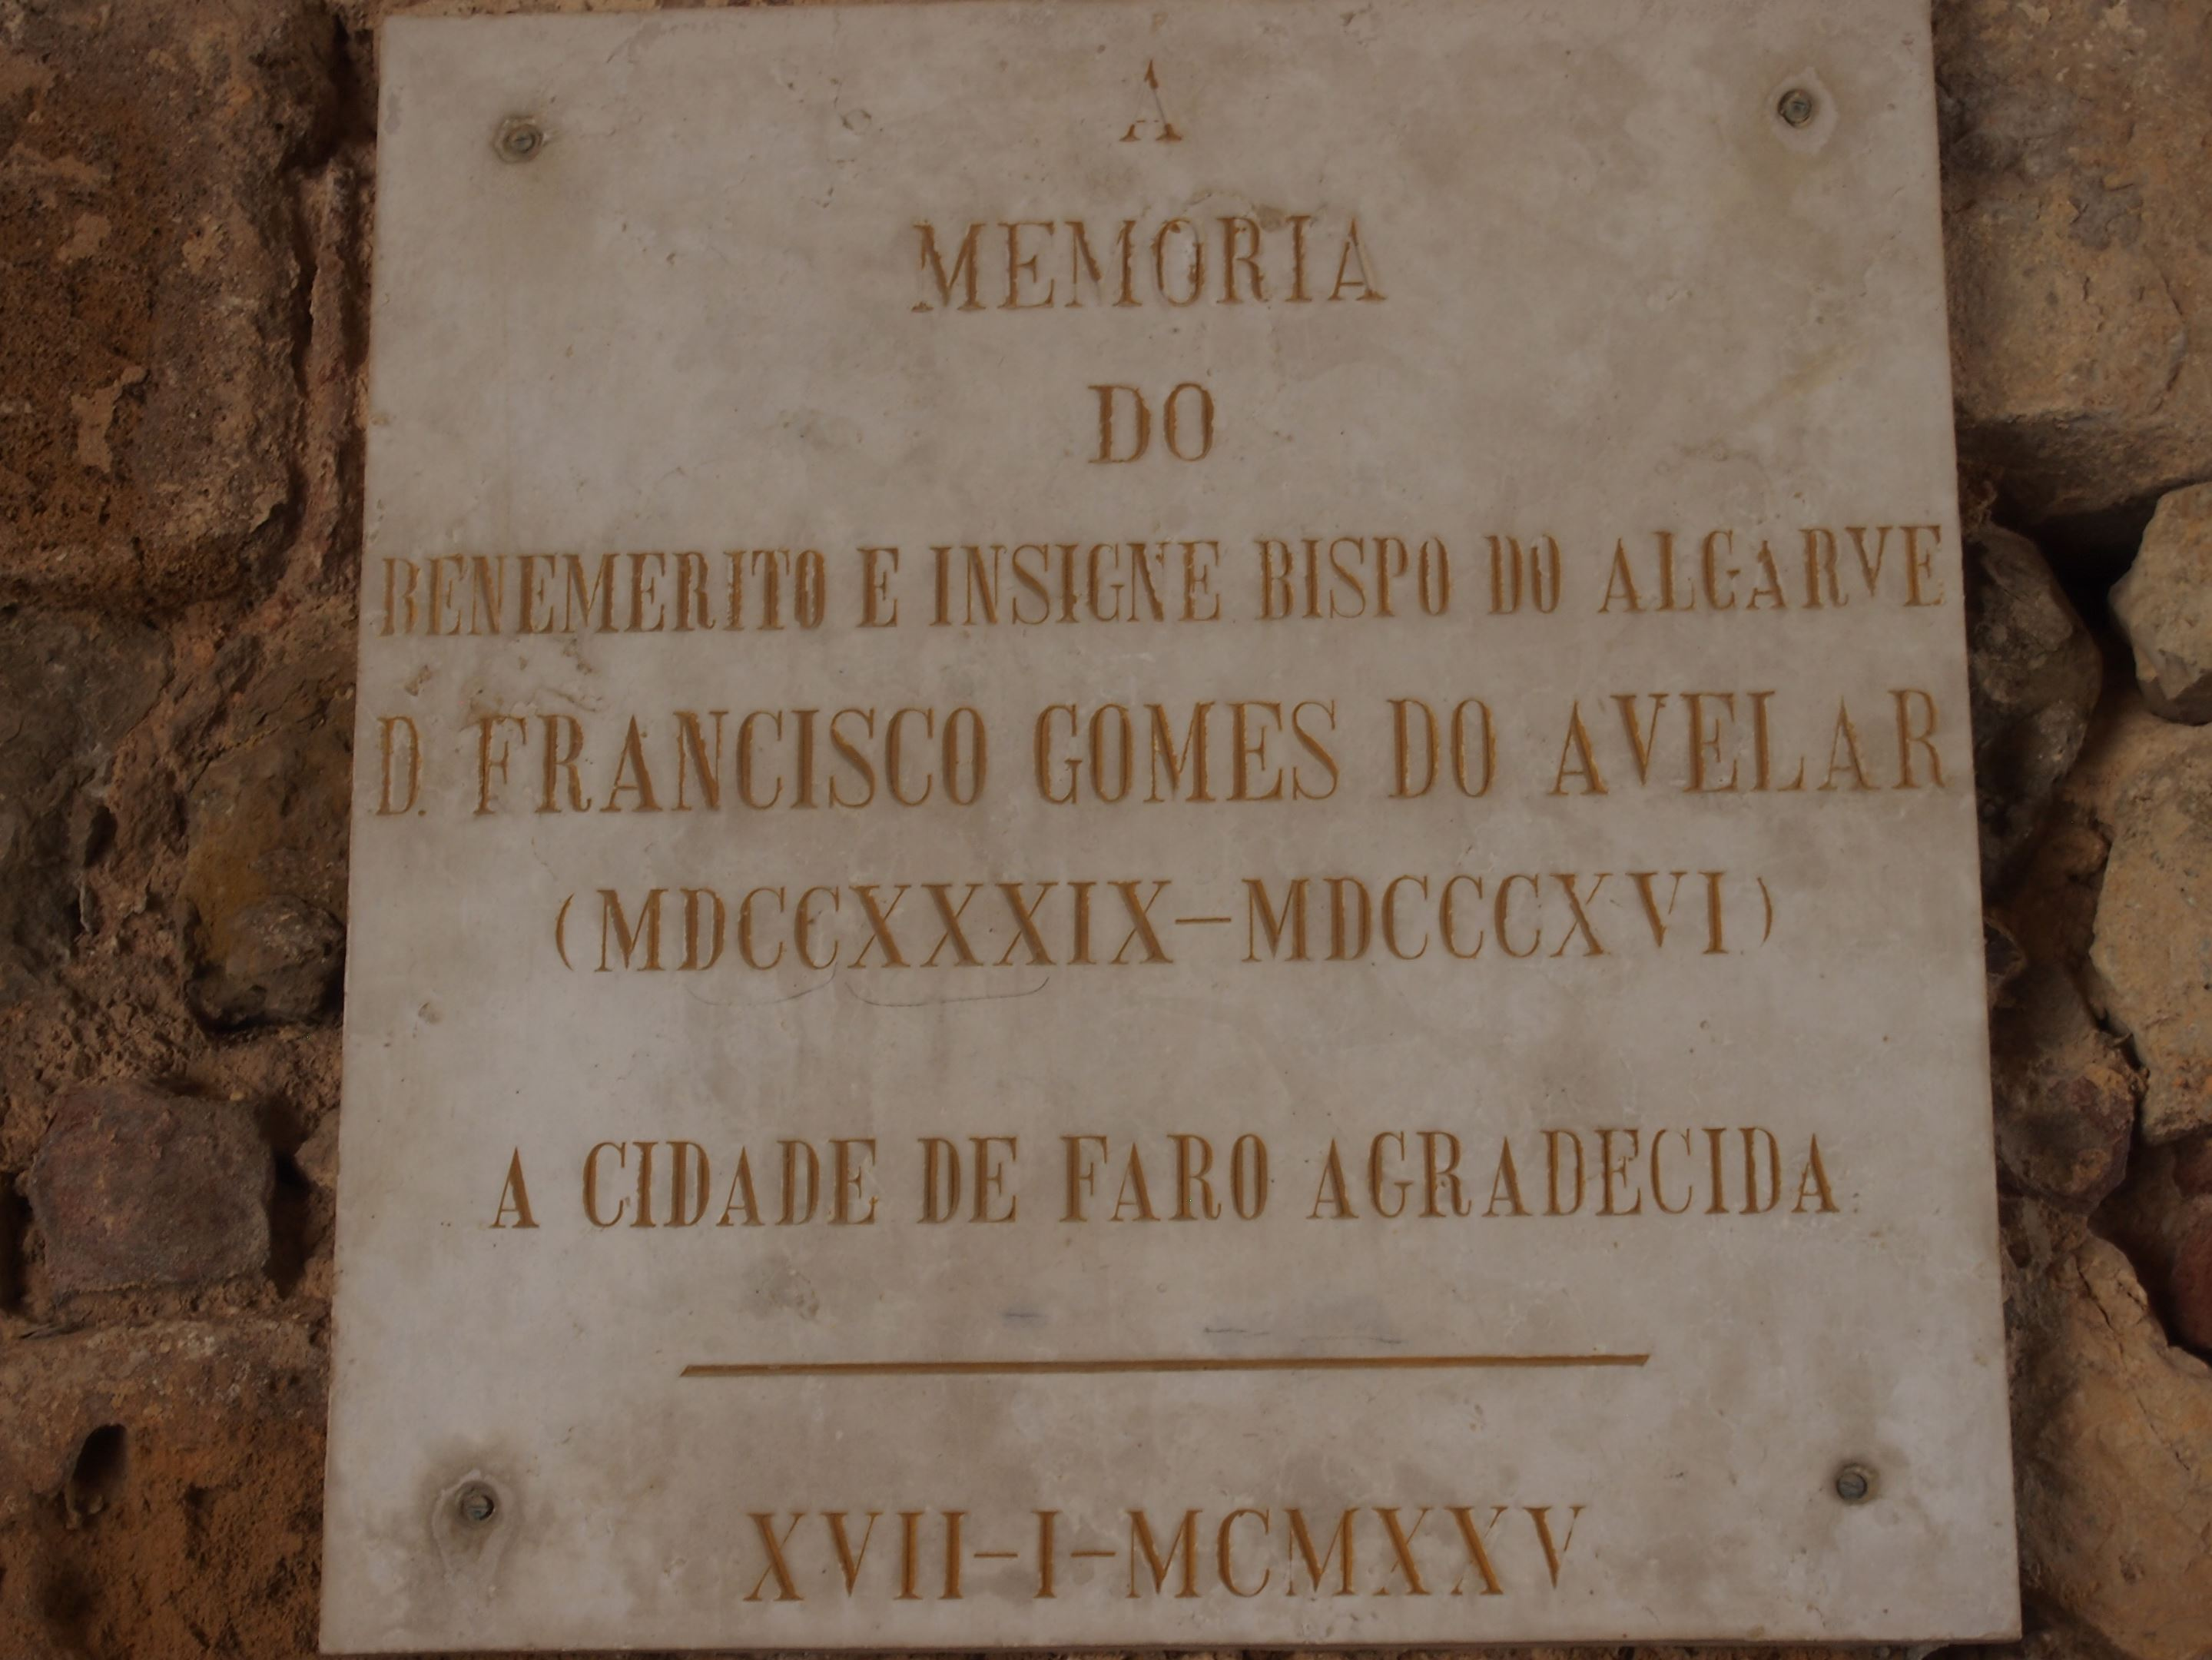 In memory of the Bishop of Algarve, D Francisco Gomes do Avelar 1739-1816